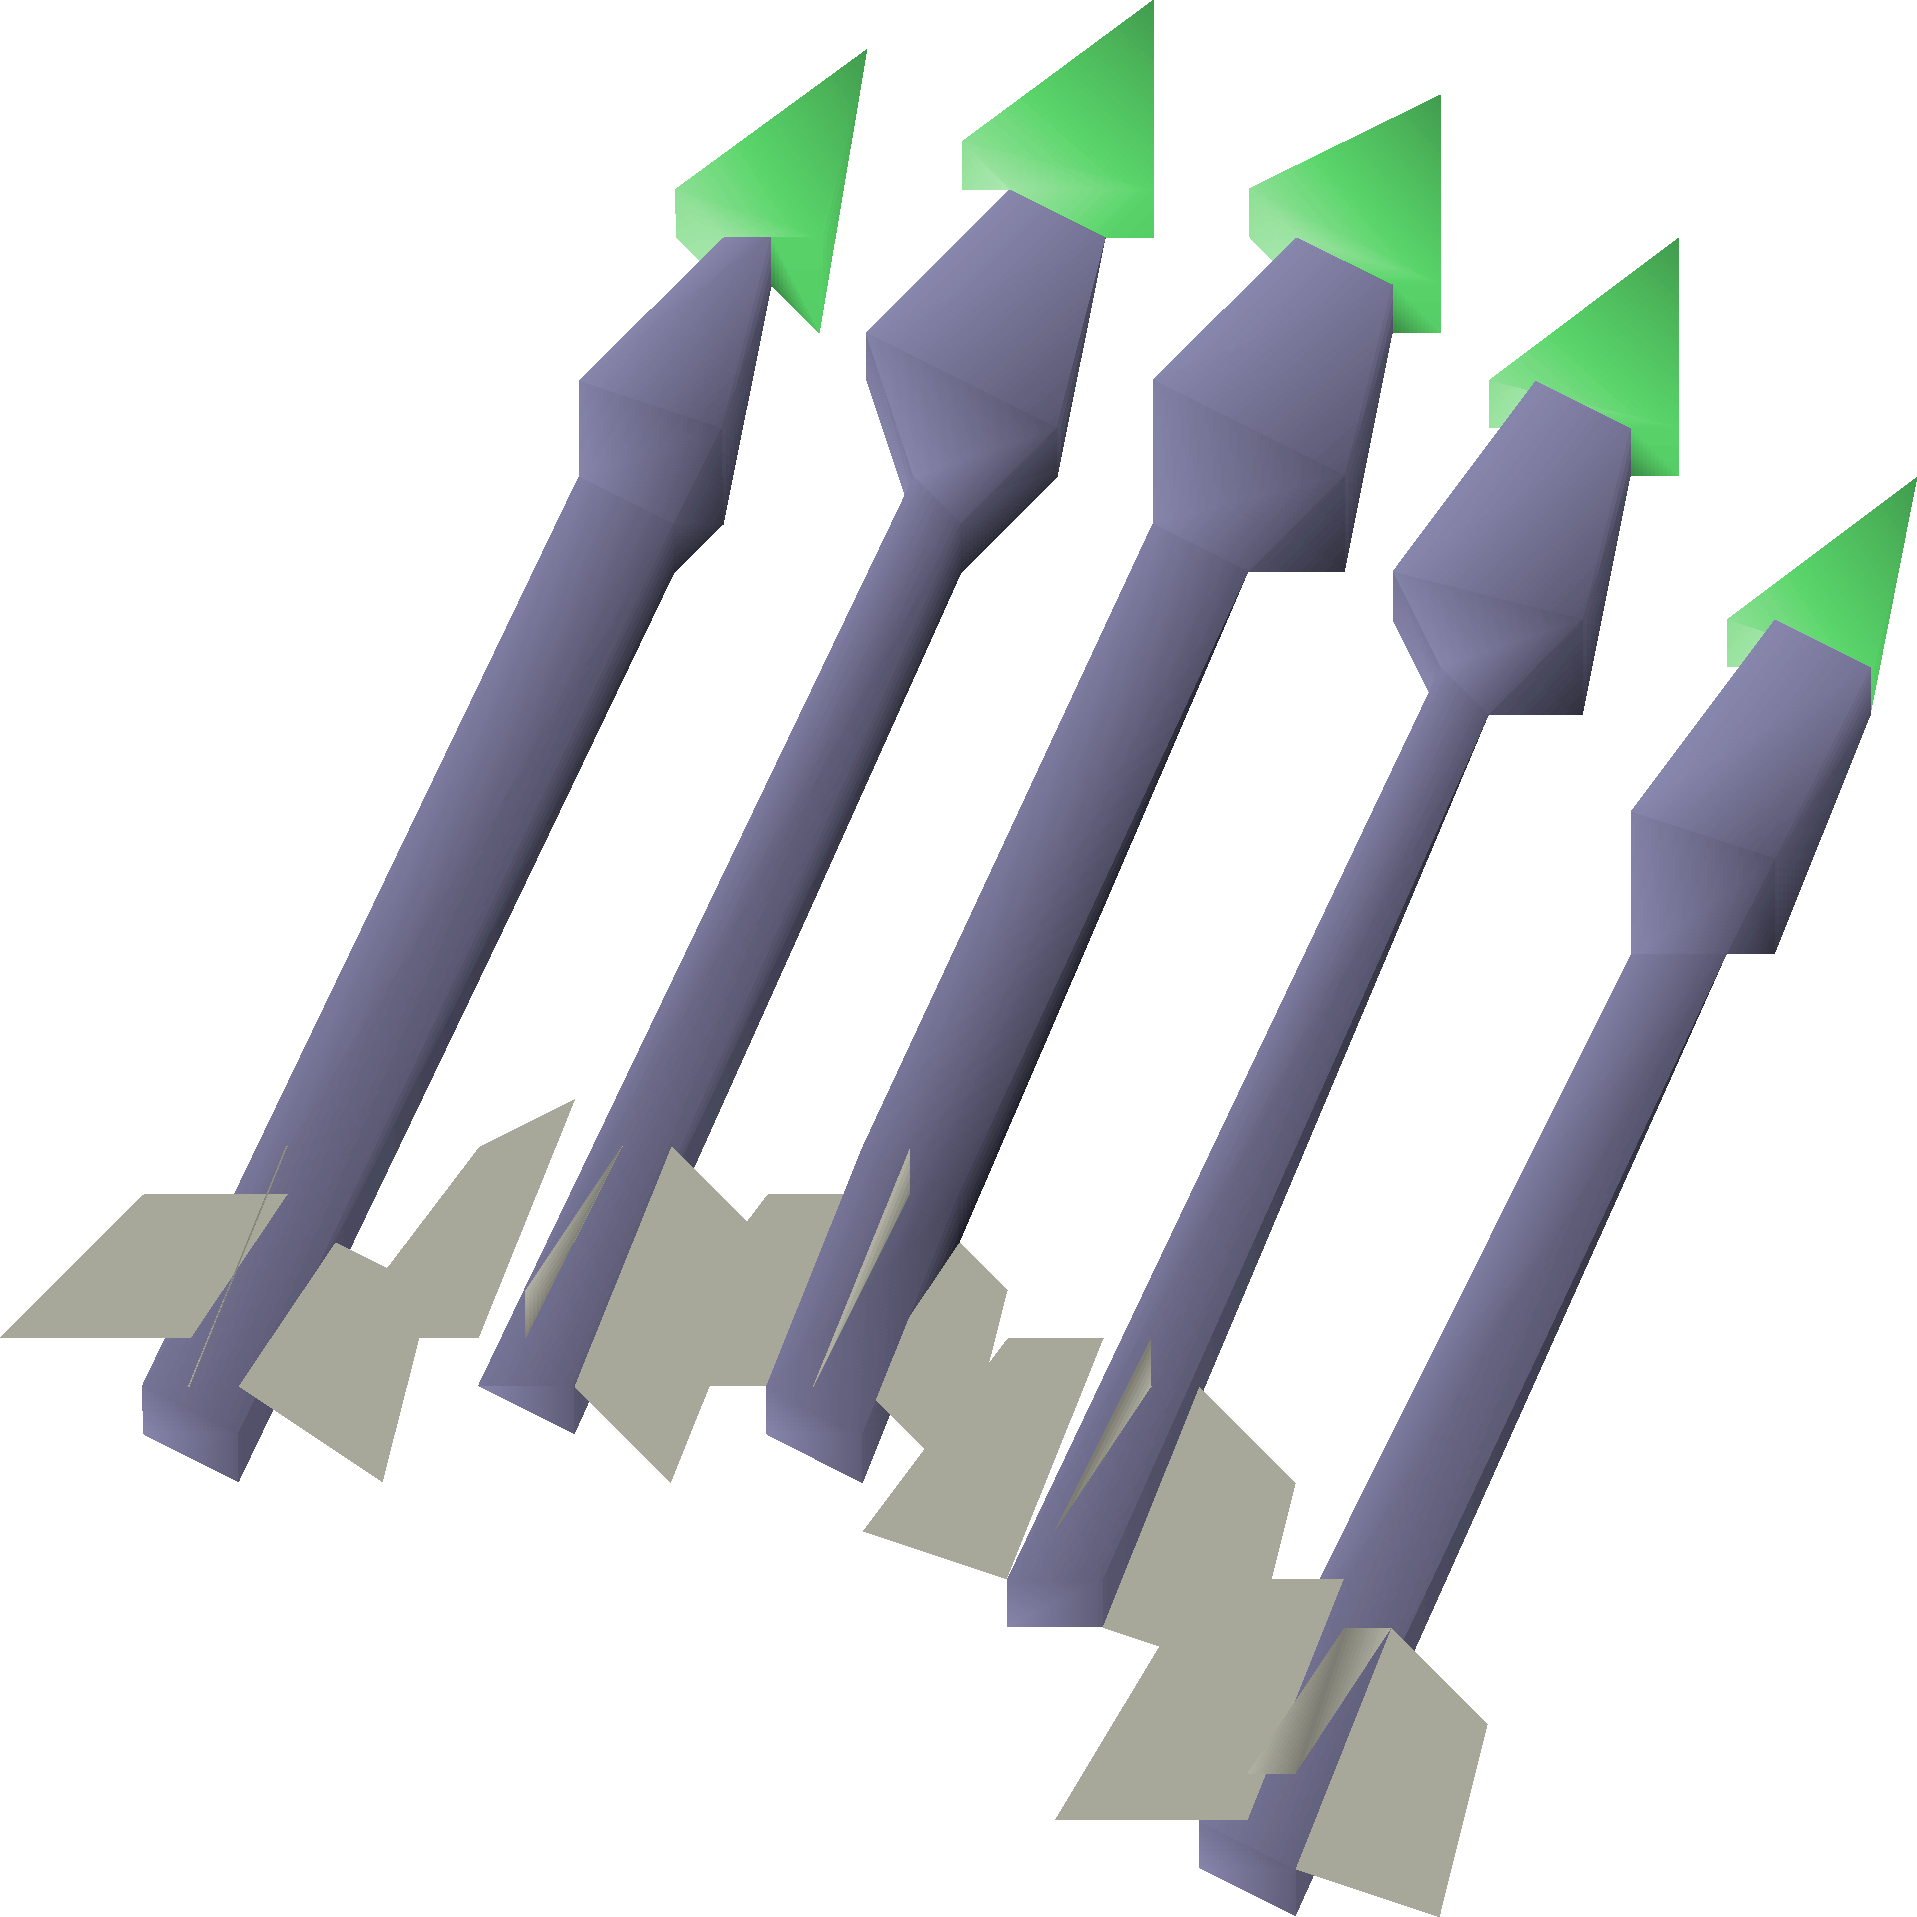 File:Emerald bolts (e) detail.png